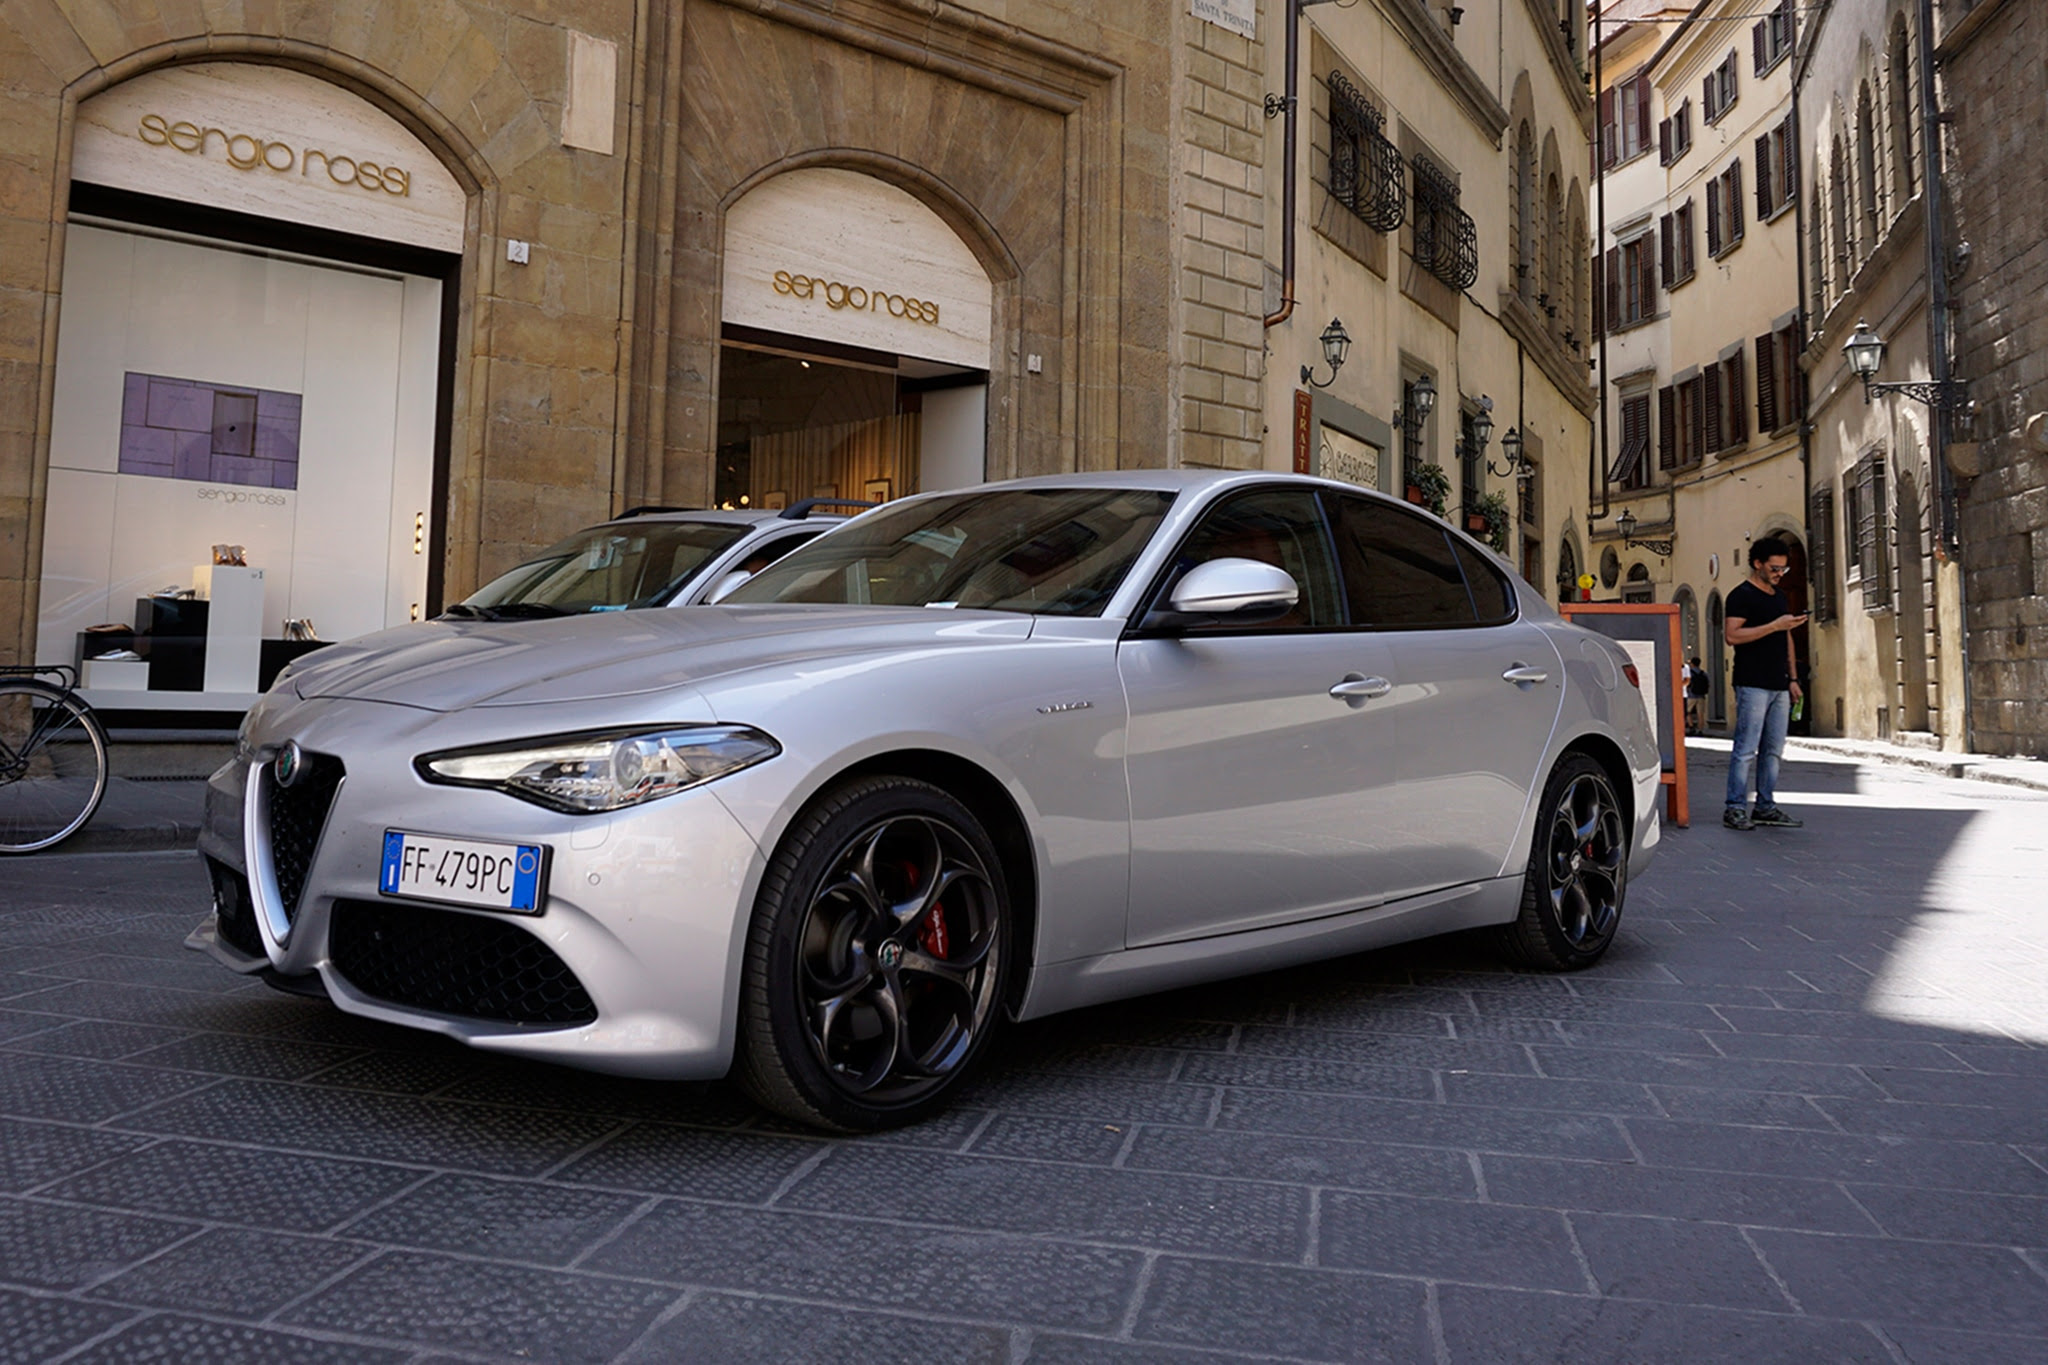 One Week in Italy with a 2017 Alfa Romeo Giulia Veloce Q4